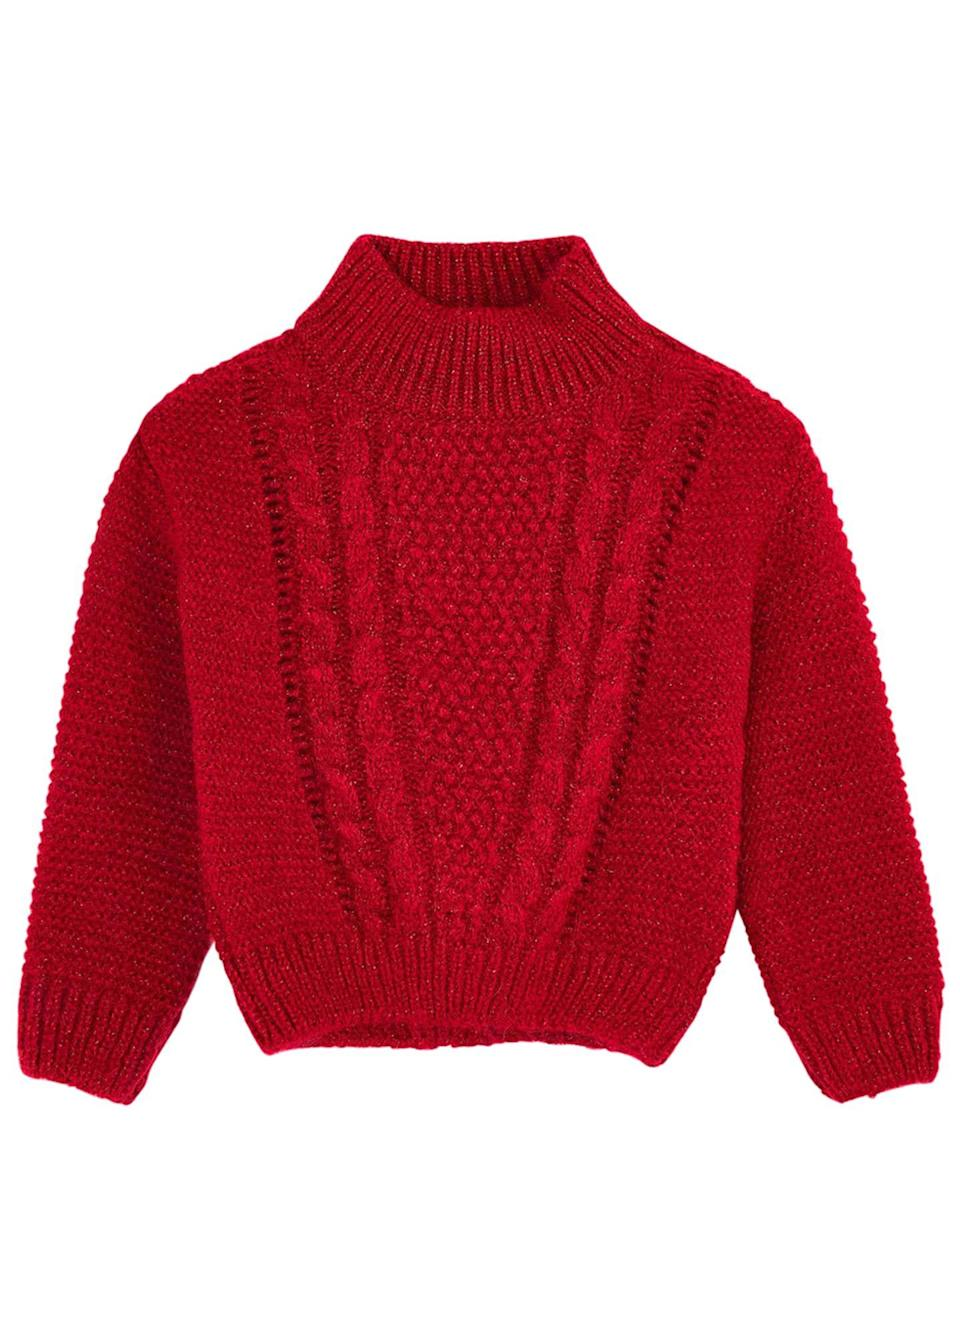 "<p><strong>Mayoral</strong></p><p>https://www.bergdorfgoodman.com</p><p><strong>$48.00</strong></p><p><a href=""https://www.bergdorfgoodman.com/p/mayoral-boys-chunky-cable-knit-sweater-size-4-8-prod159750358"" rel=""nofollow noopener"" target=""_blank"" data-ylk=""slk:Shop Now"" class=""link rapid-noclick-resp"">Shop Now</a></p>"